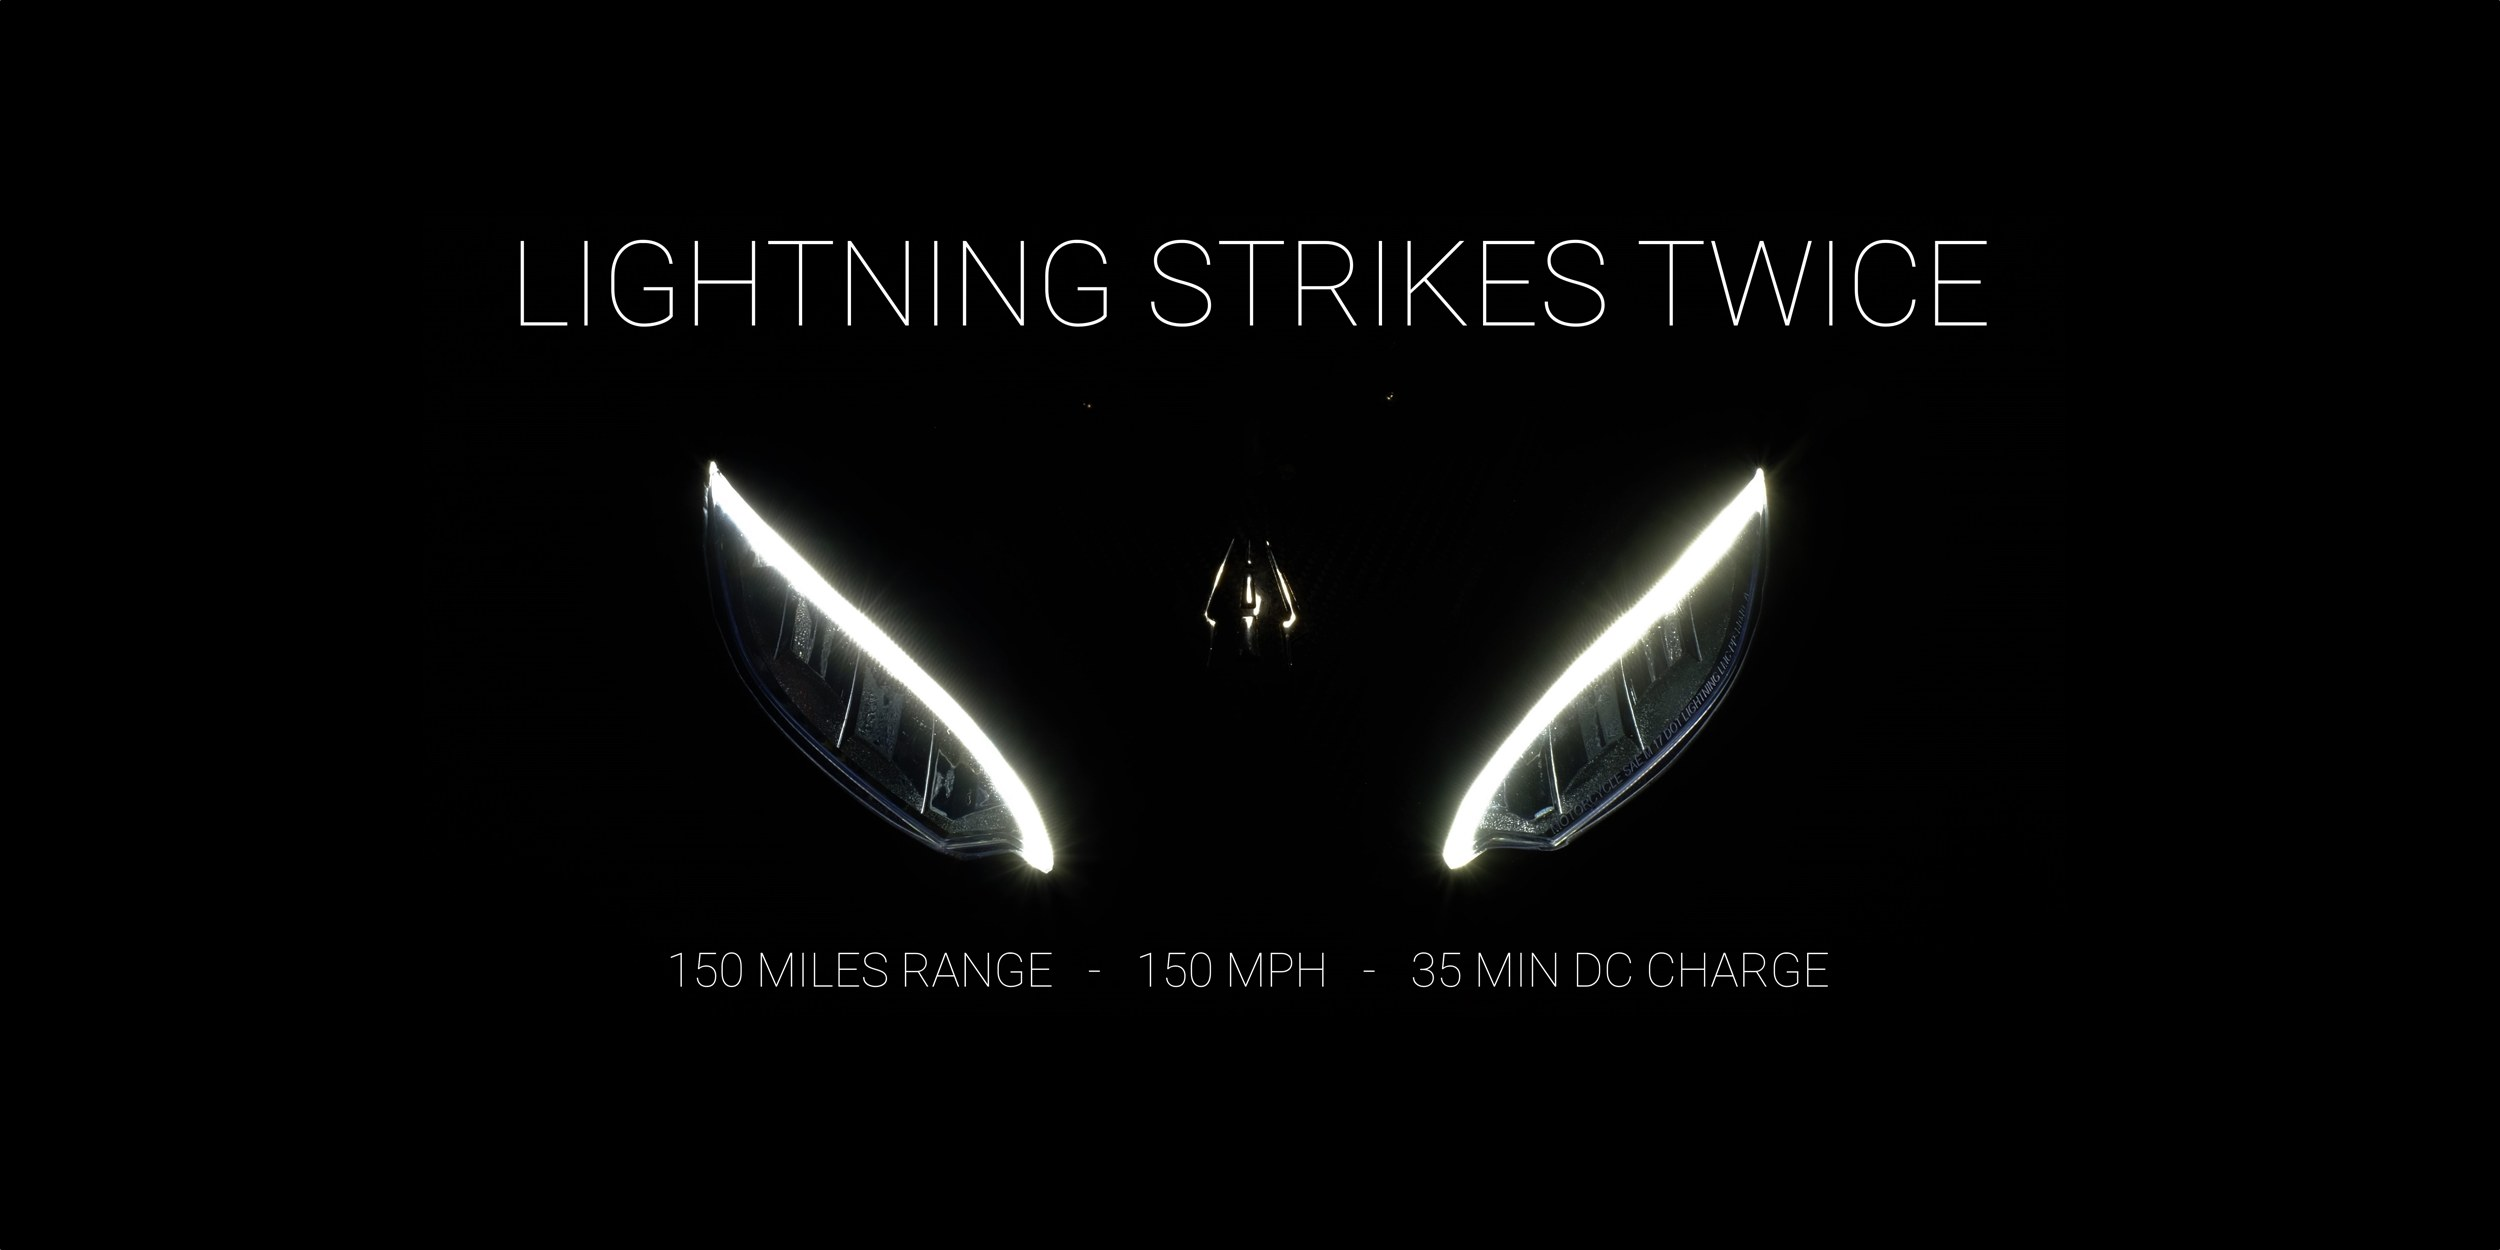 New Lightning electric motorcycle: 150 mph, 150 miles, 35 min charge, $13k